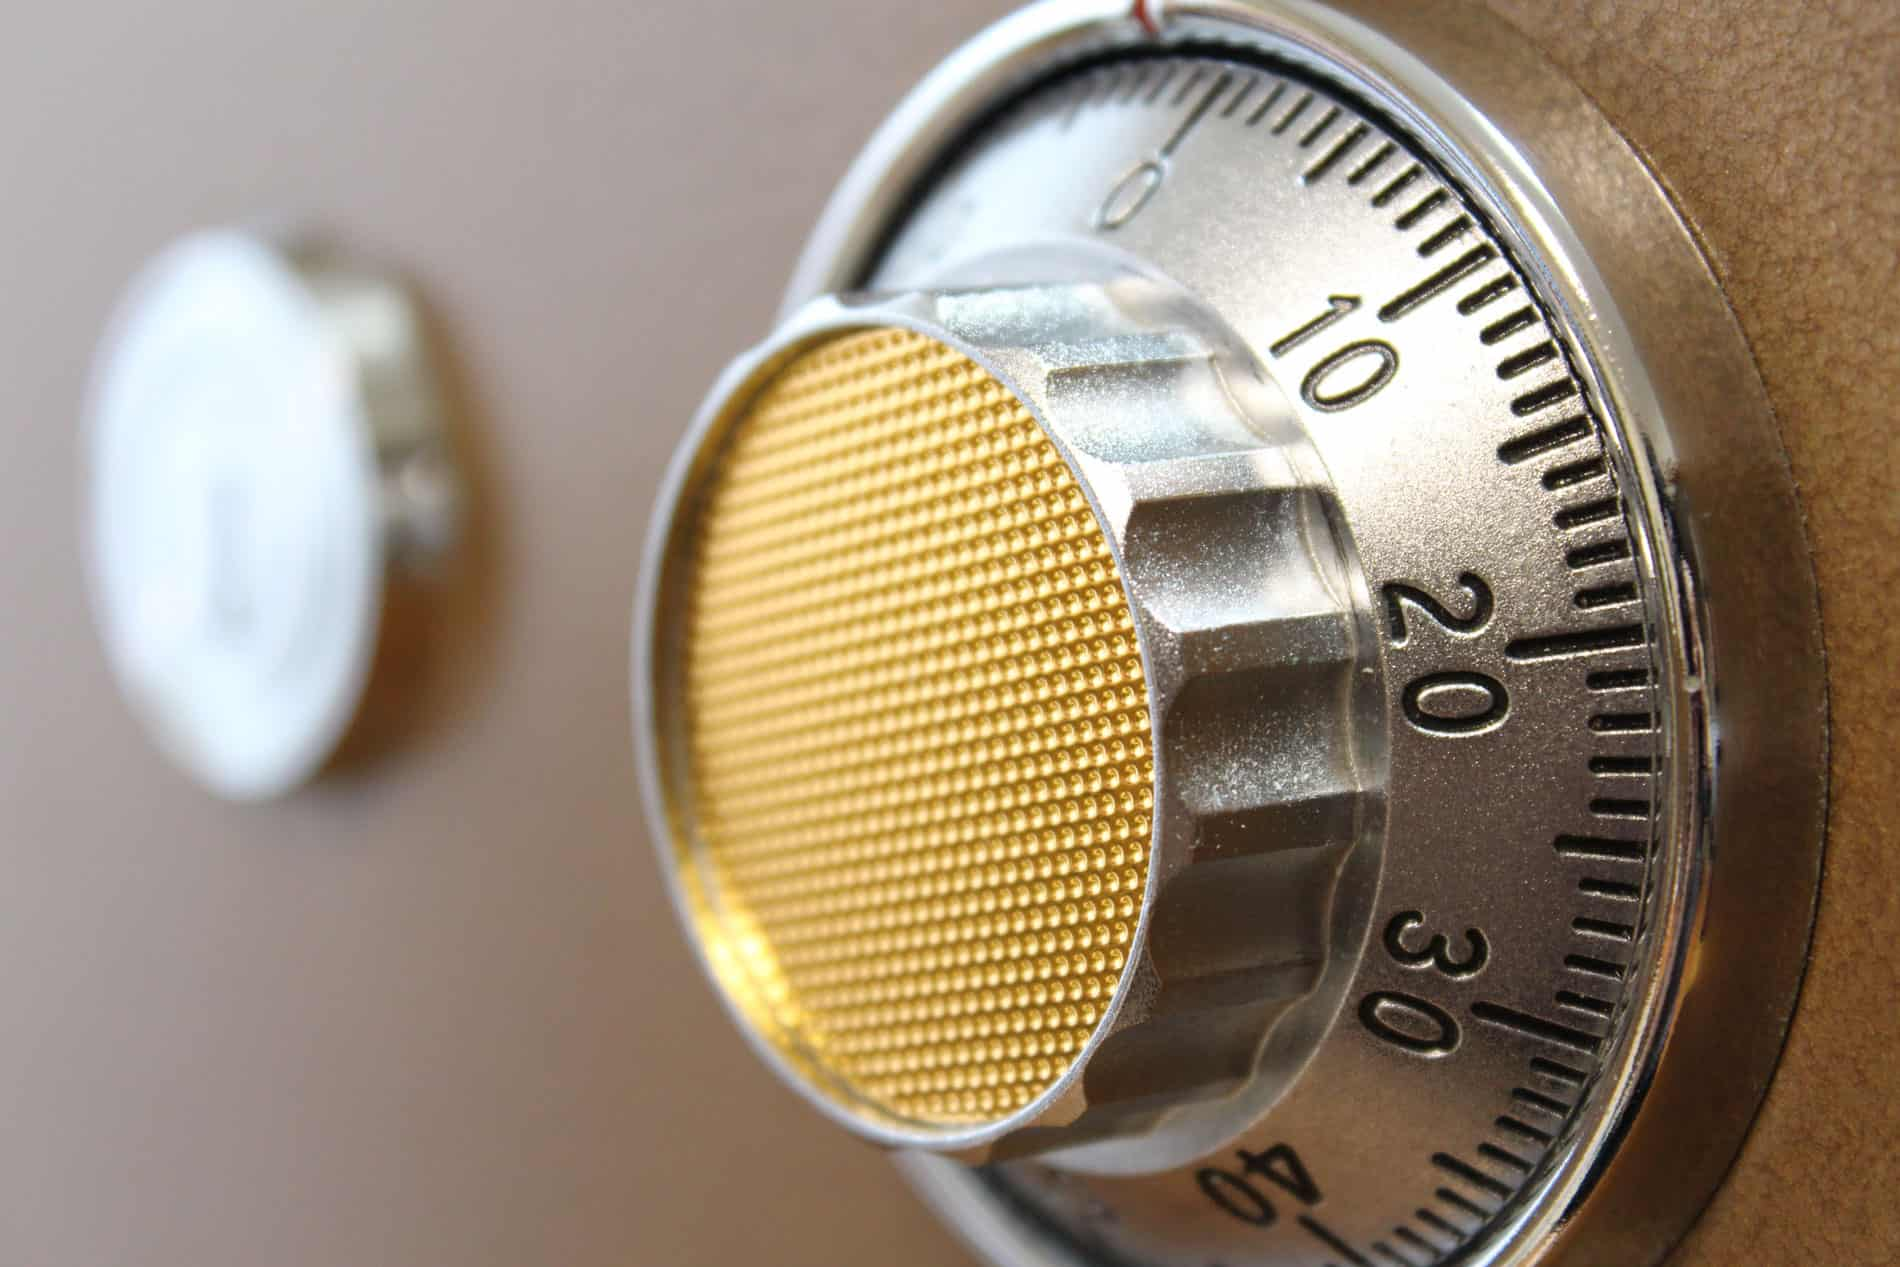 Safe Opening and Recombinations are a Few of Green Bay Locksmith Boss Lock & Security's Skills